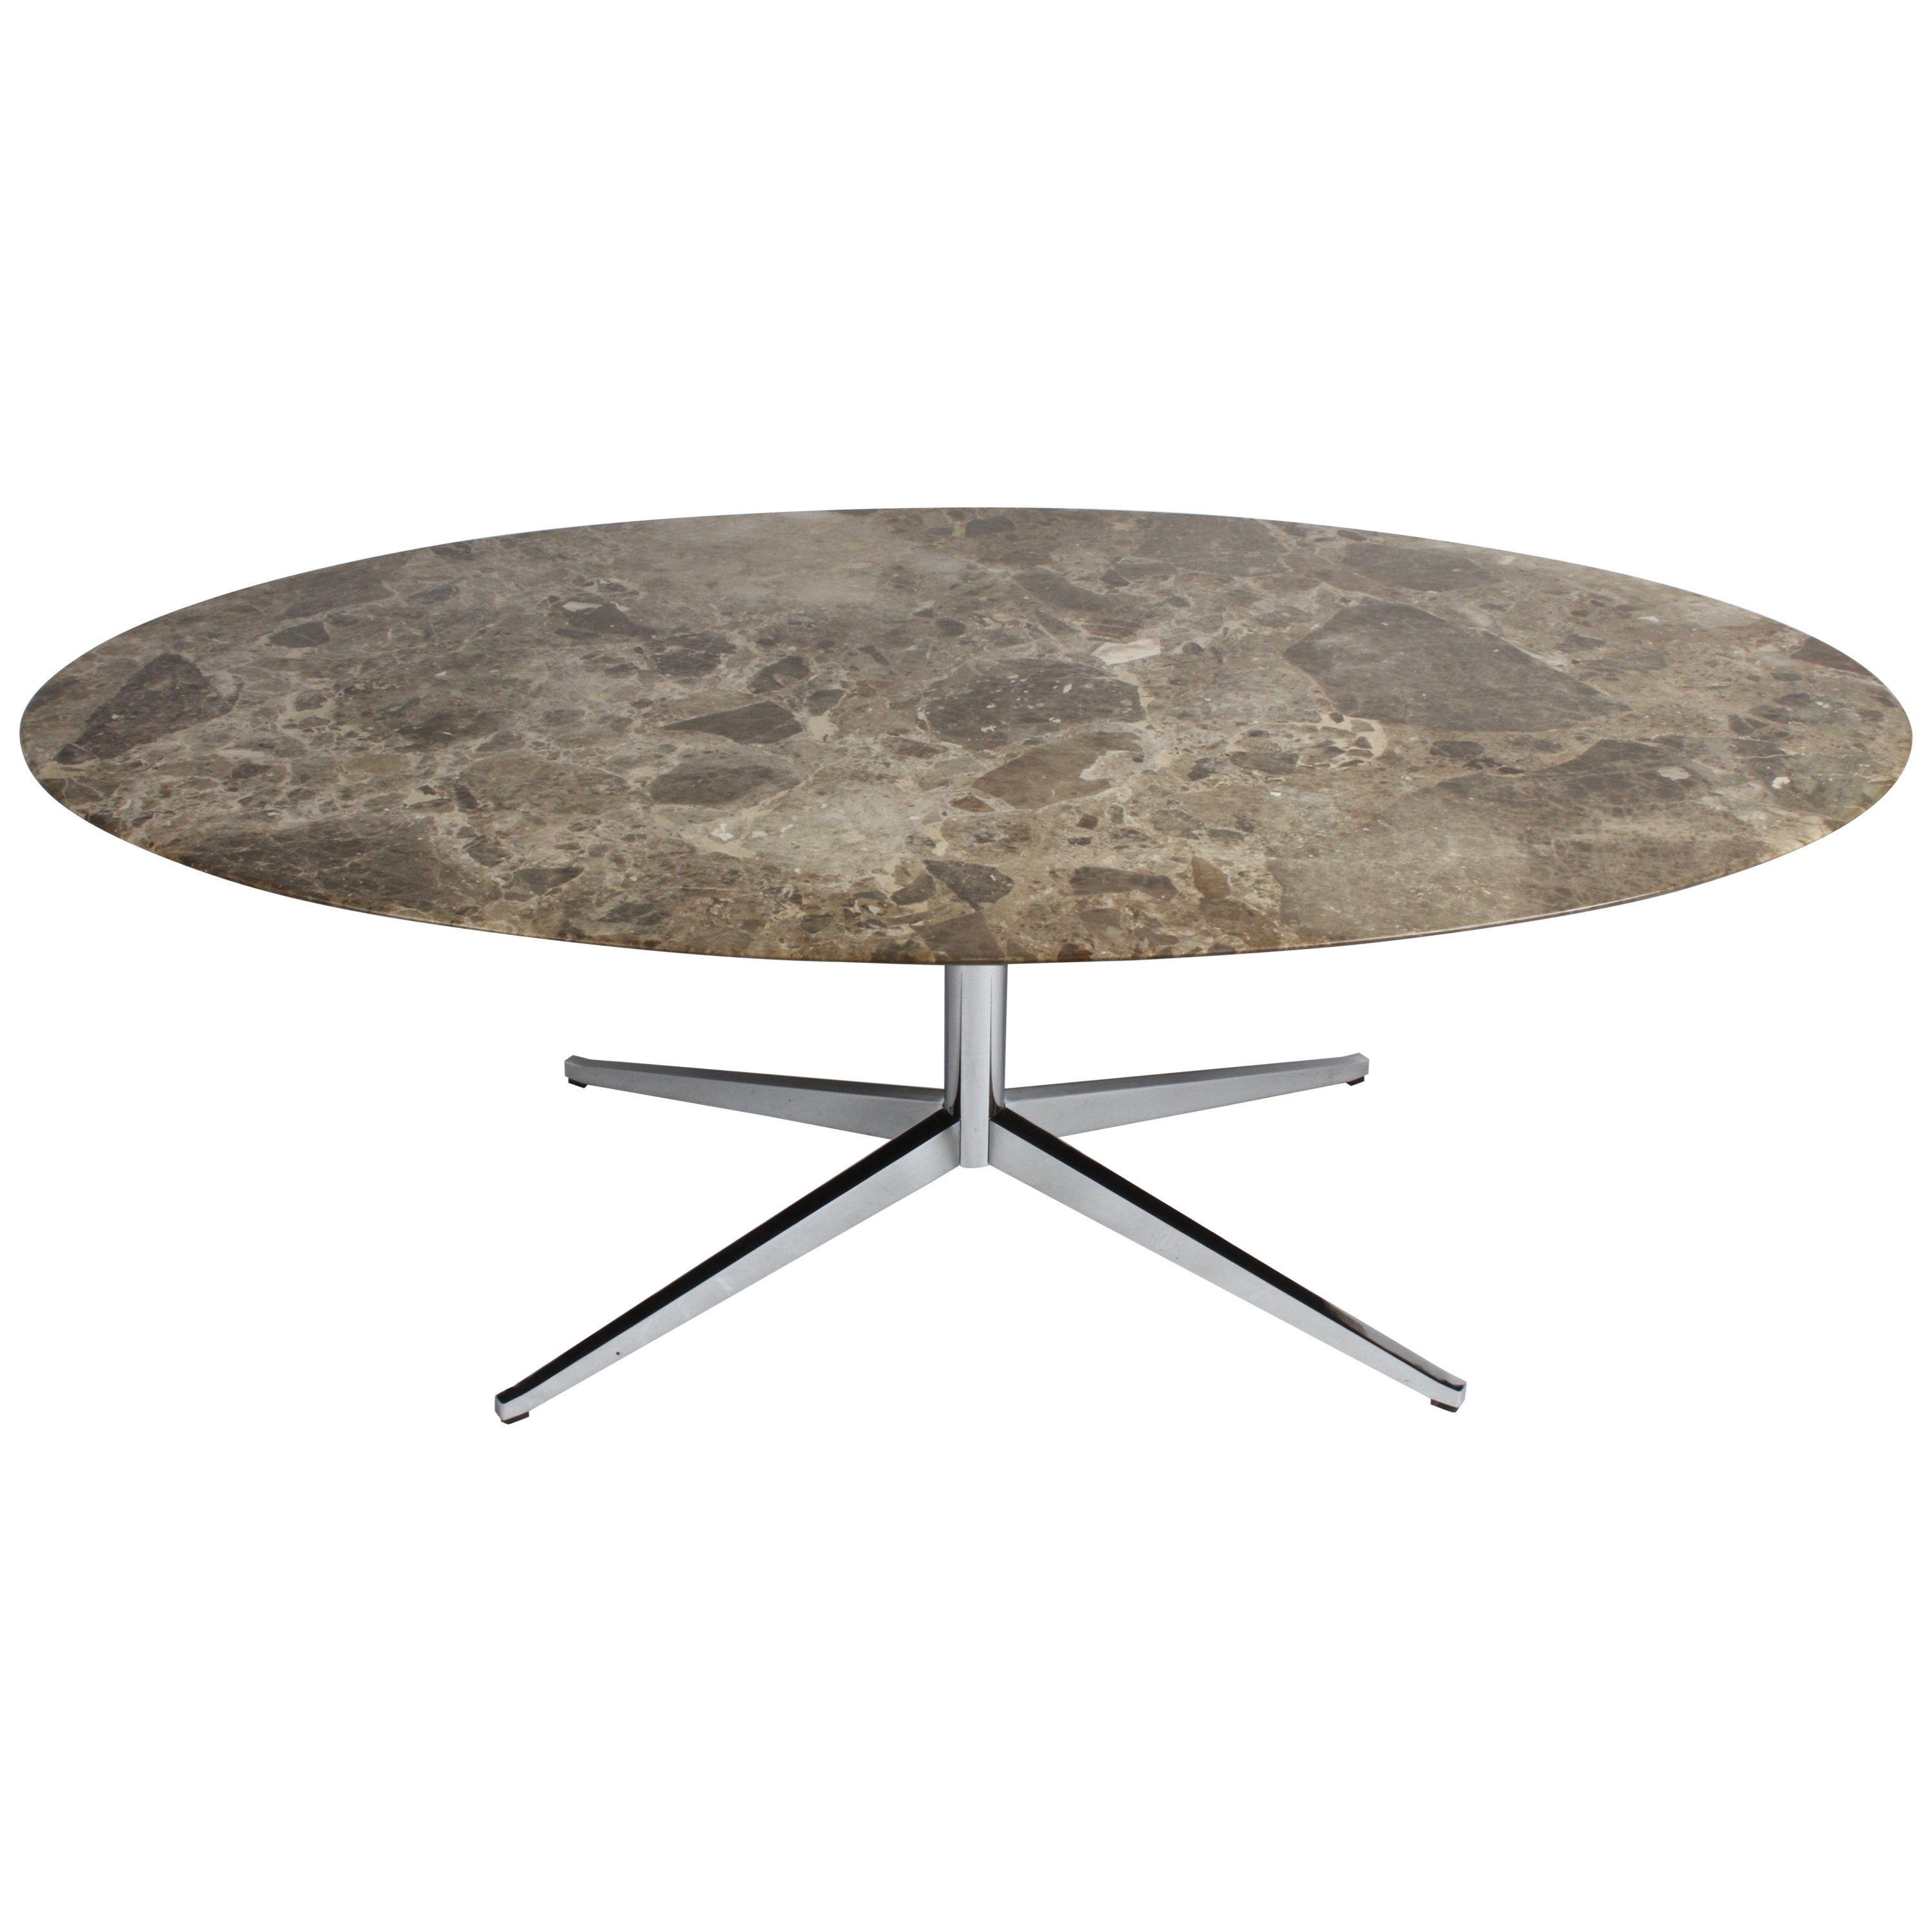 Florence Knoll Oval Emperador Marble Top Dining Table, Conference Table or Desk